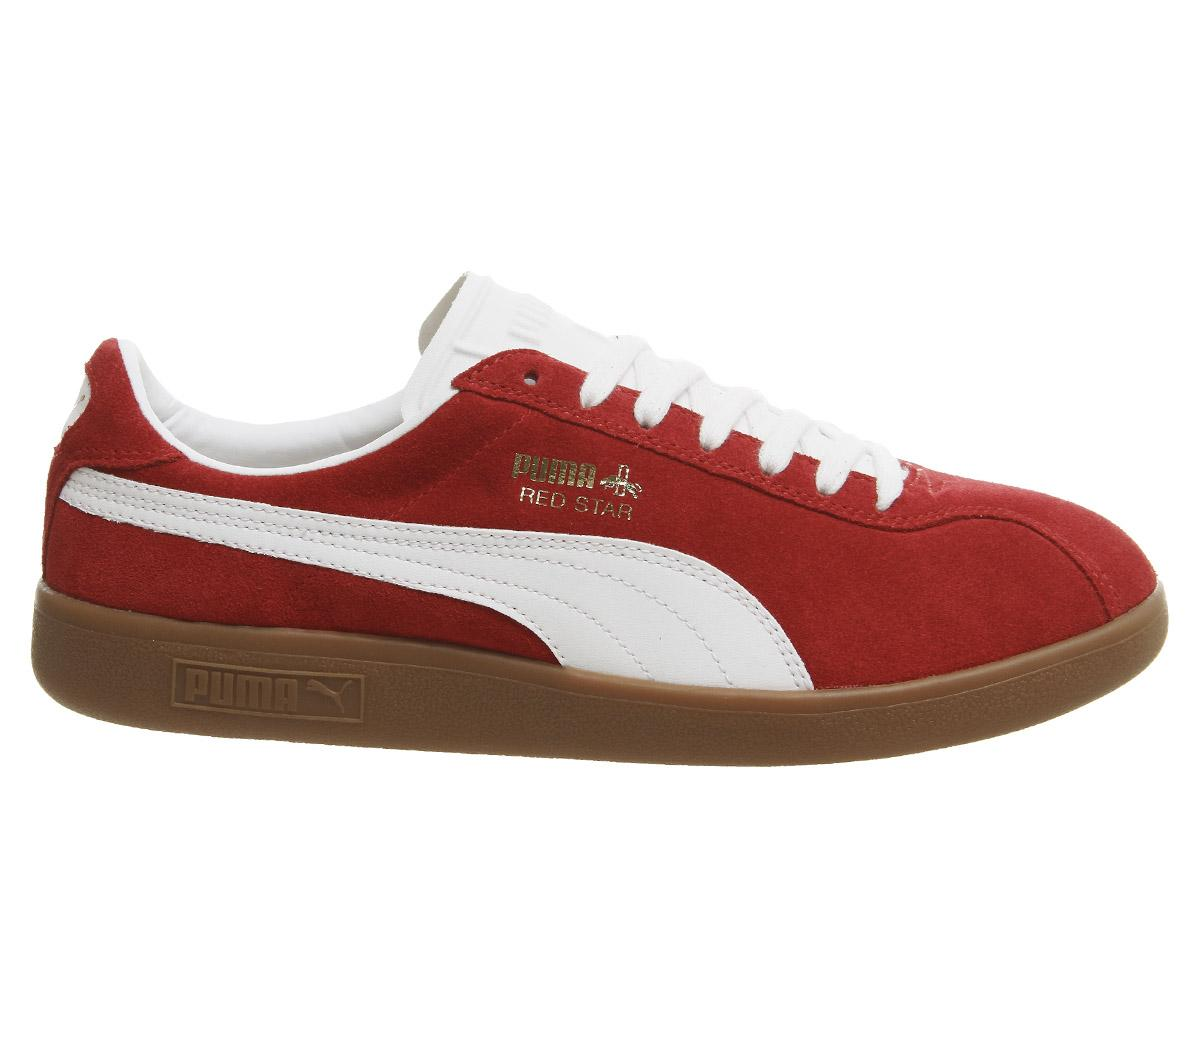 cde57ff7 PUMA Suede 366662 01 Red Star for Men - Lyst